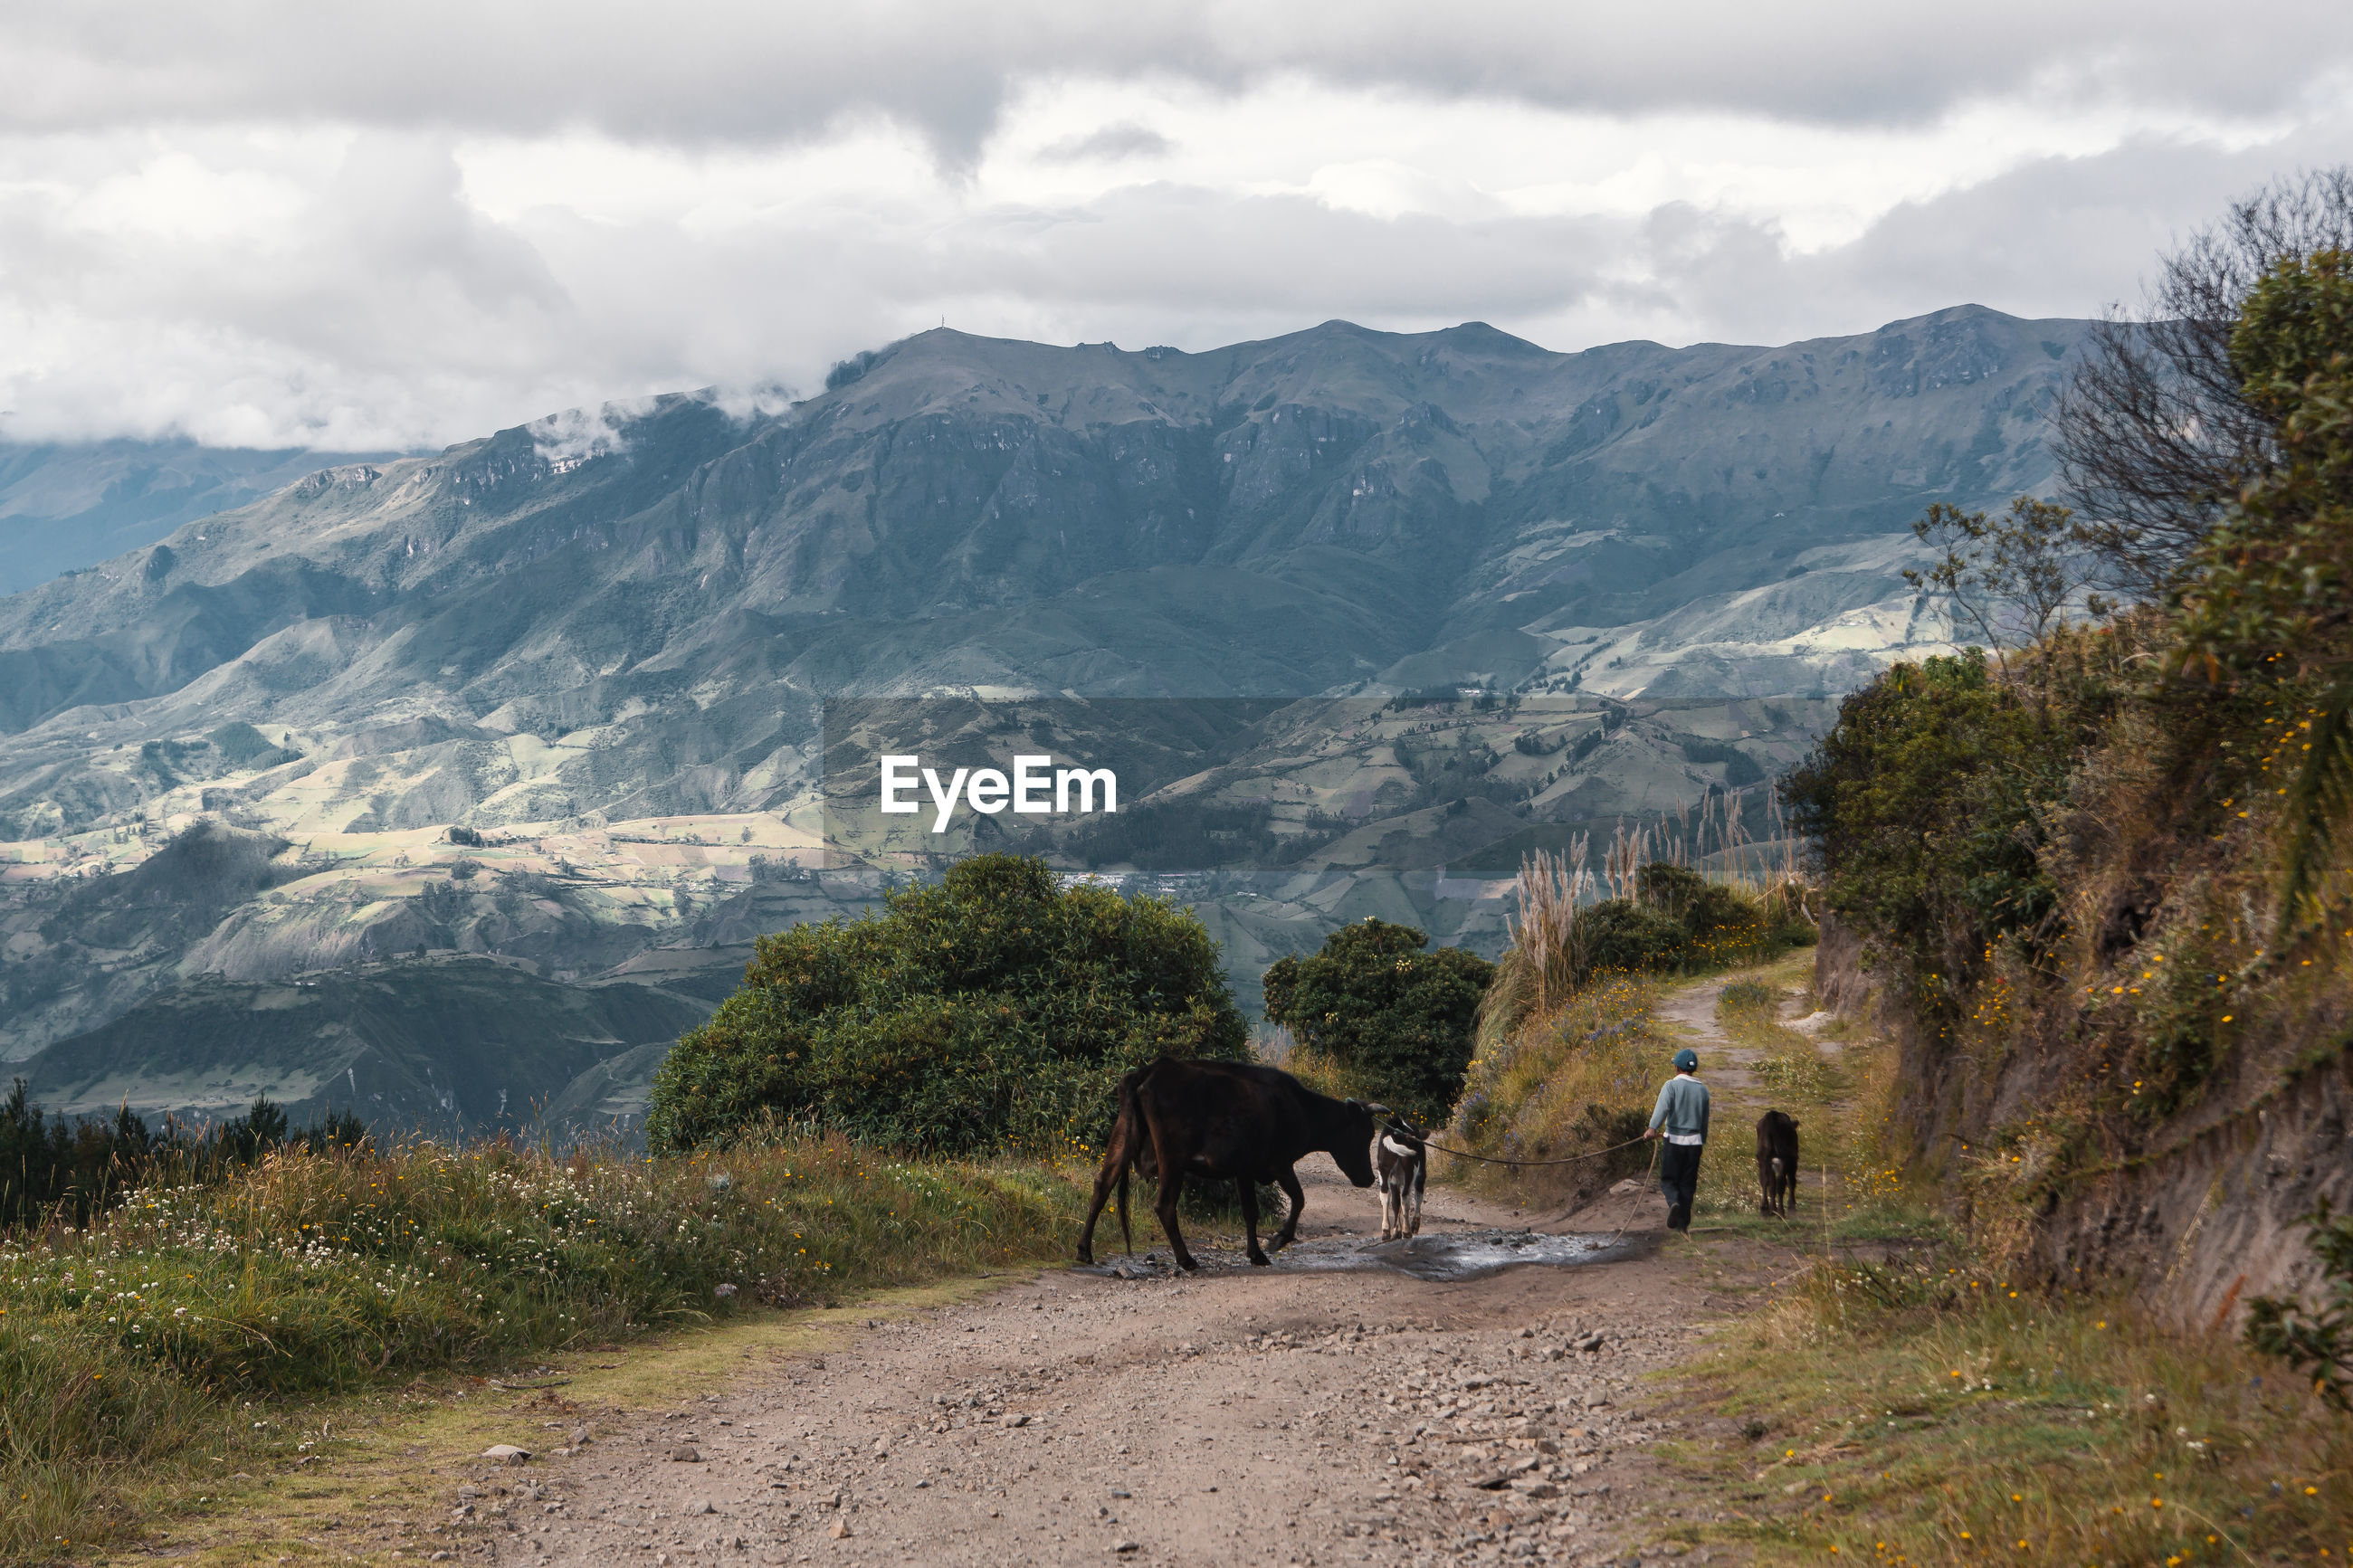 VIEW OF HORSES ON MOUNTAIN LANDSCAPE